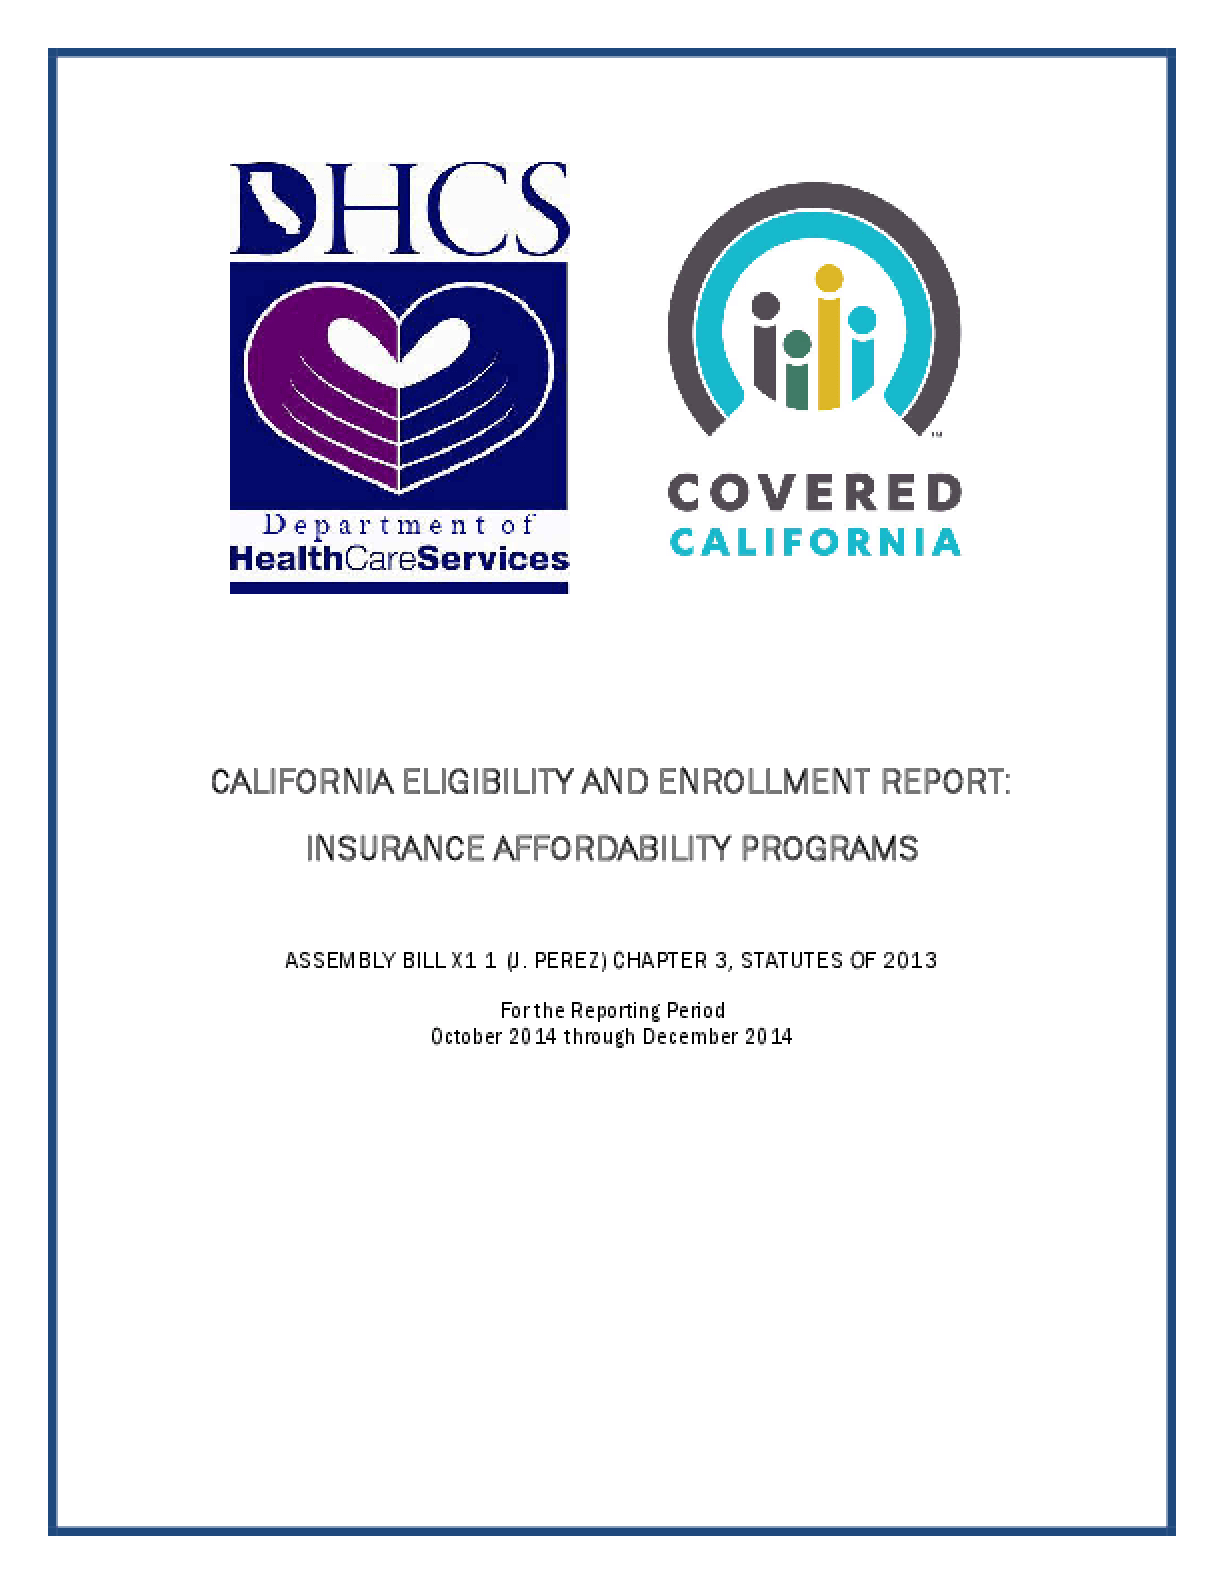 California Eligibility And Enrollment Report: Insurance Affordability Programs